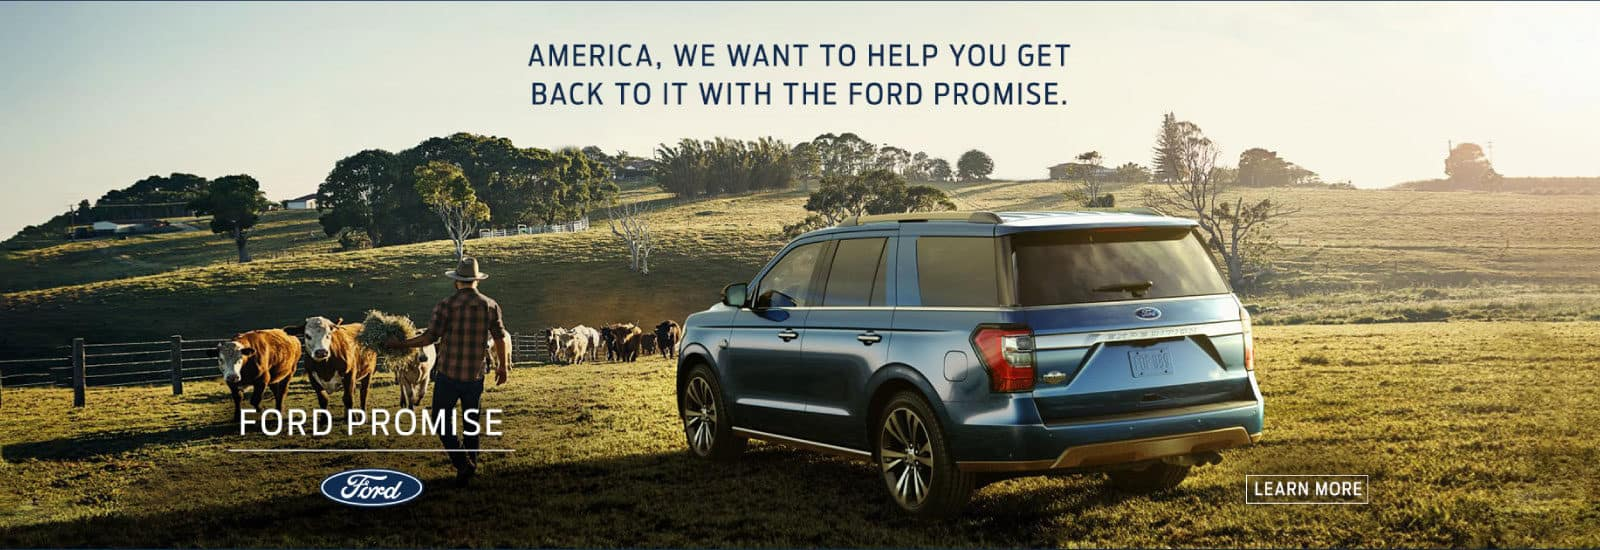 Ford-Promise-Web-Banner-1600×550